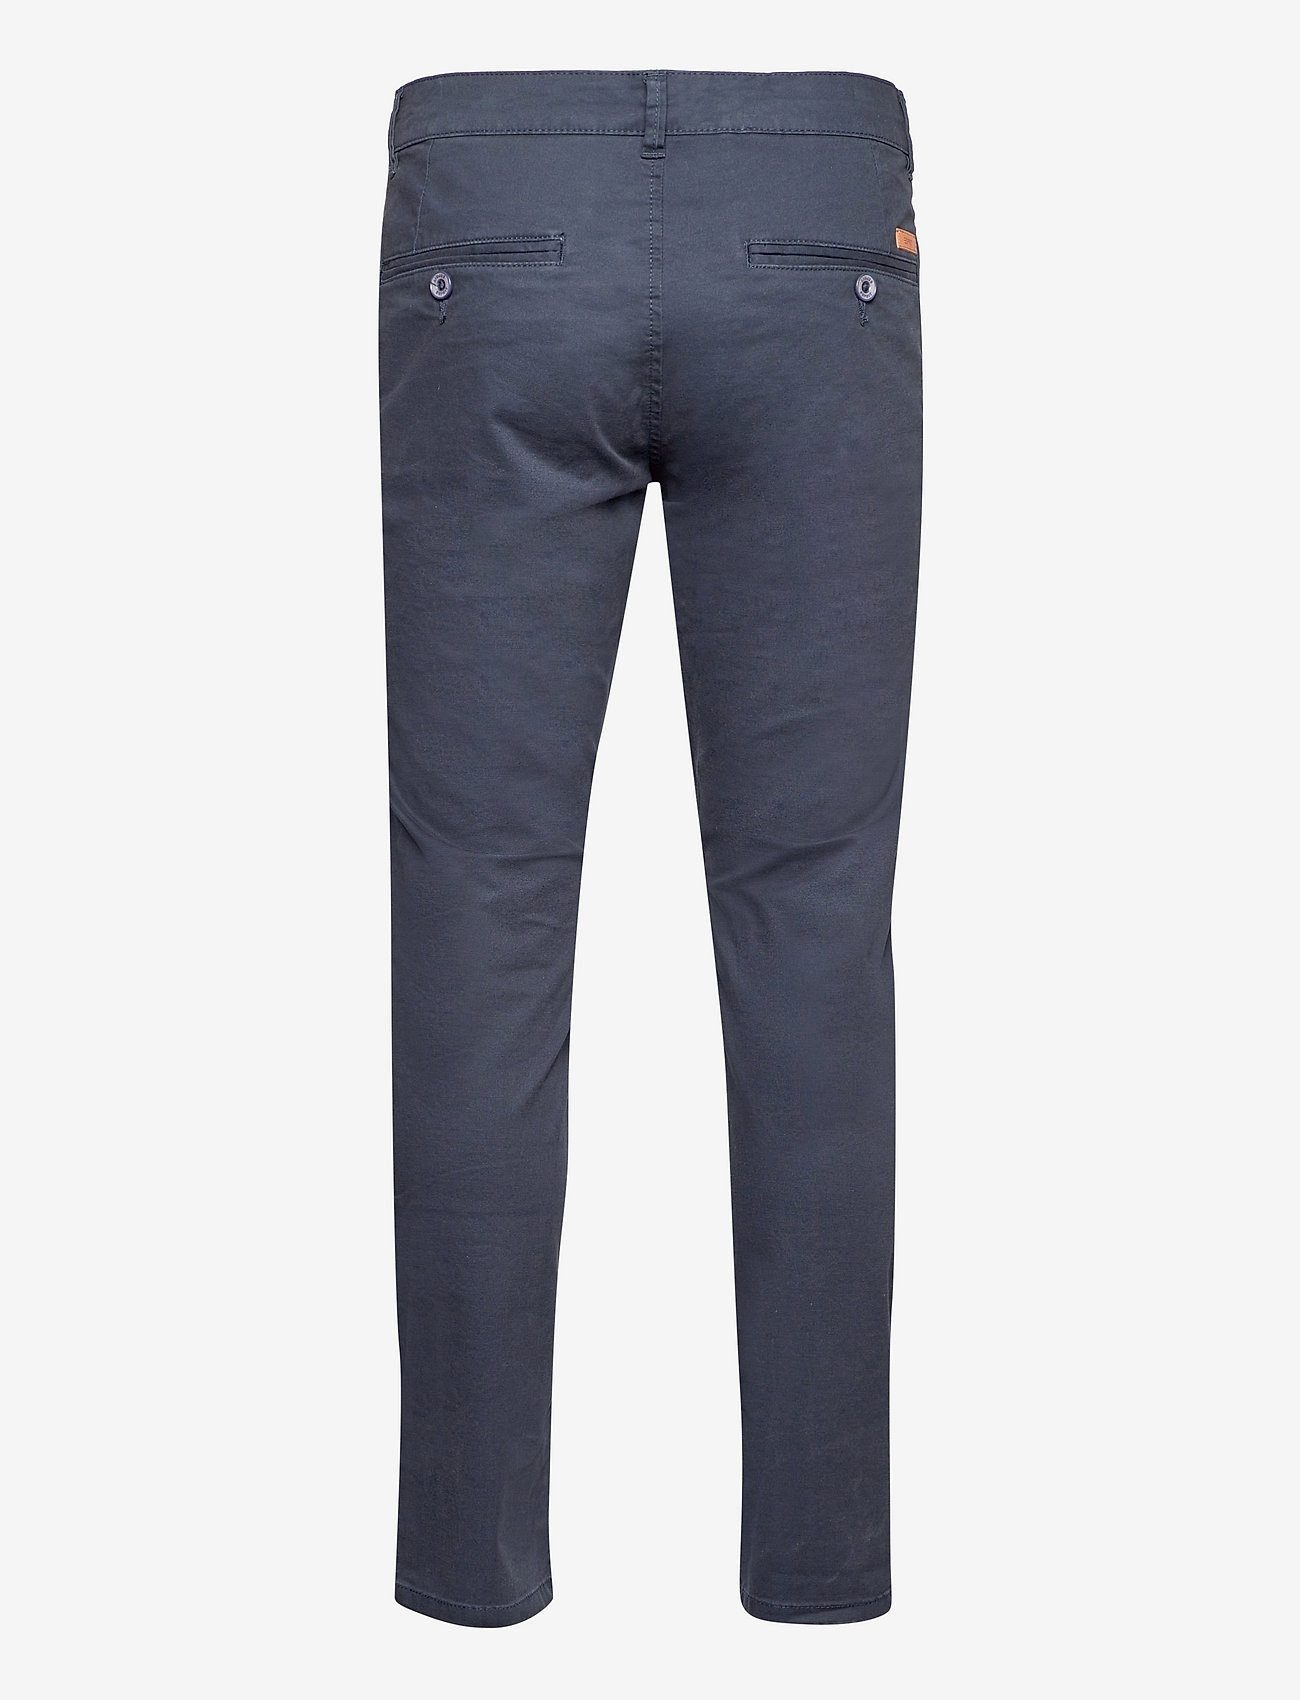 Esprit Casual - Pants woven - chinos - navy - 1